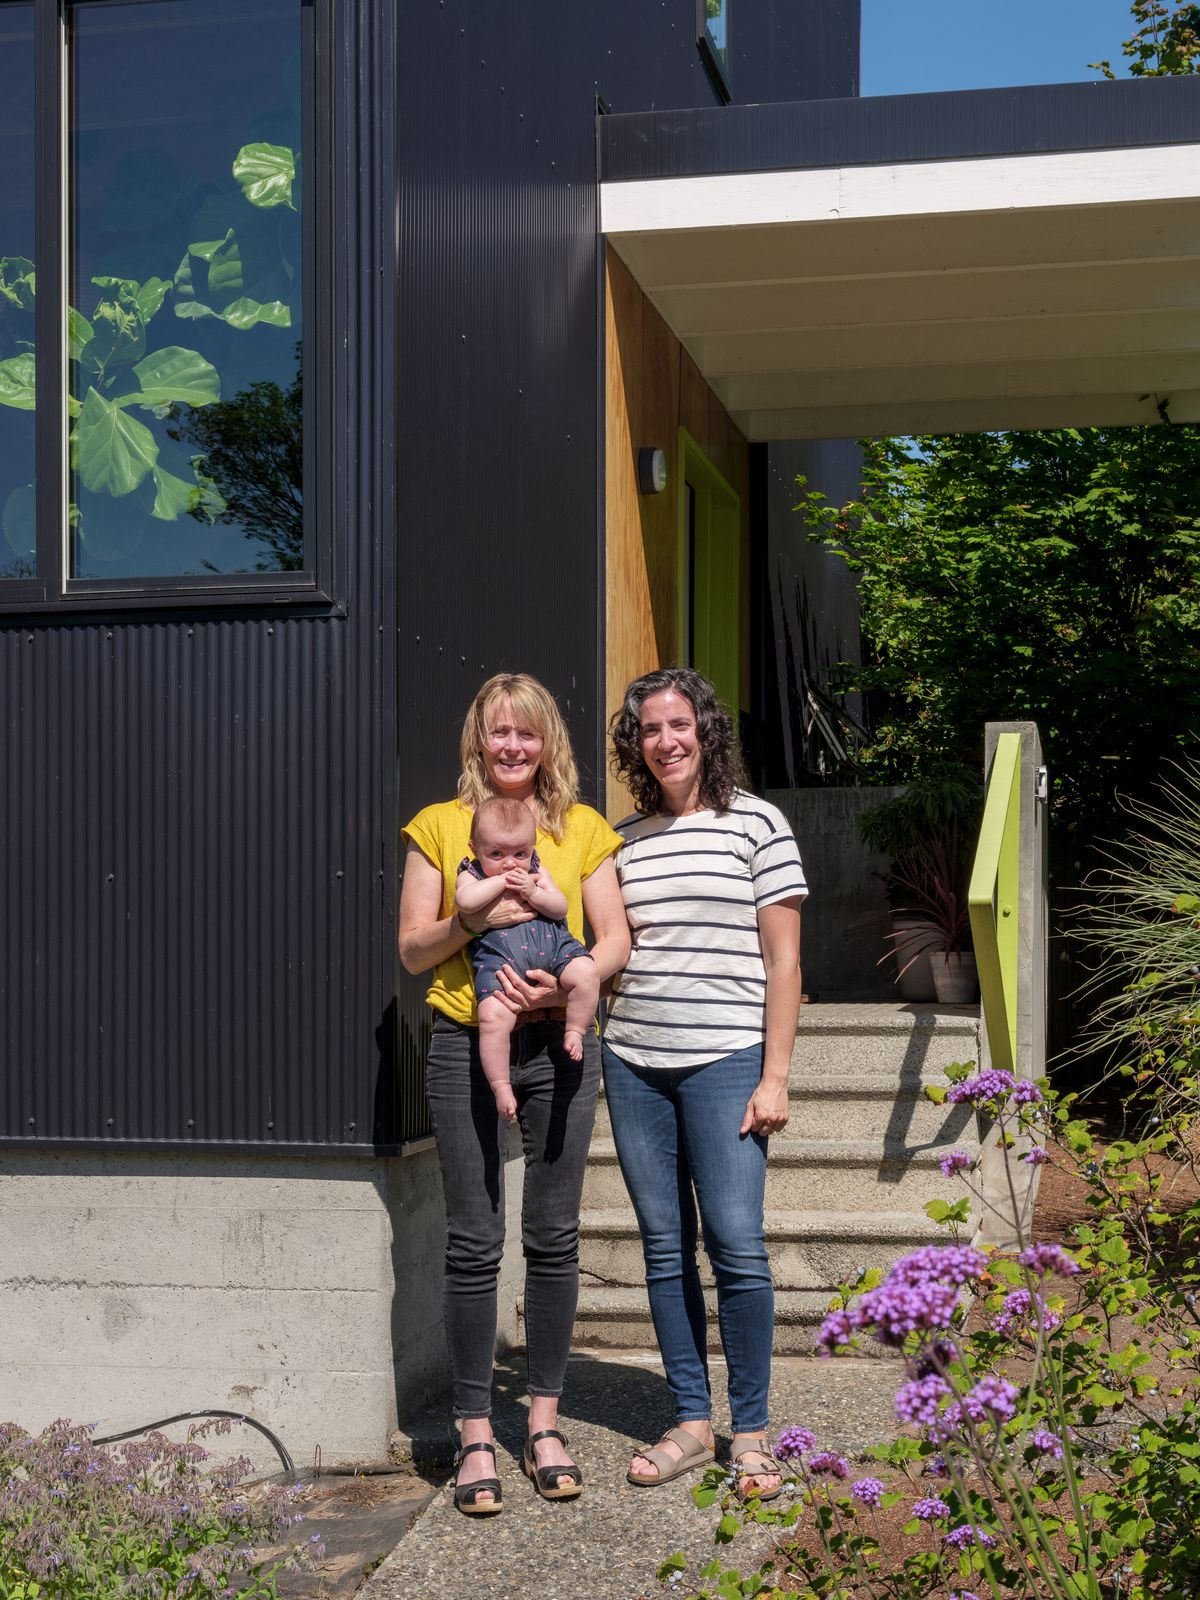 Two women stand next to a house with a painted black facade. One of the women is holding an infant. There are purple wildflowers and plants lining the path they are standing on.